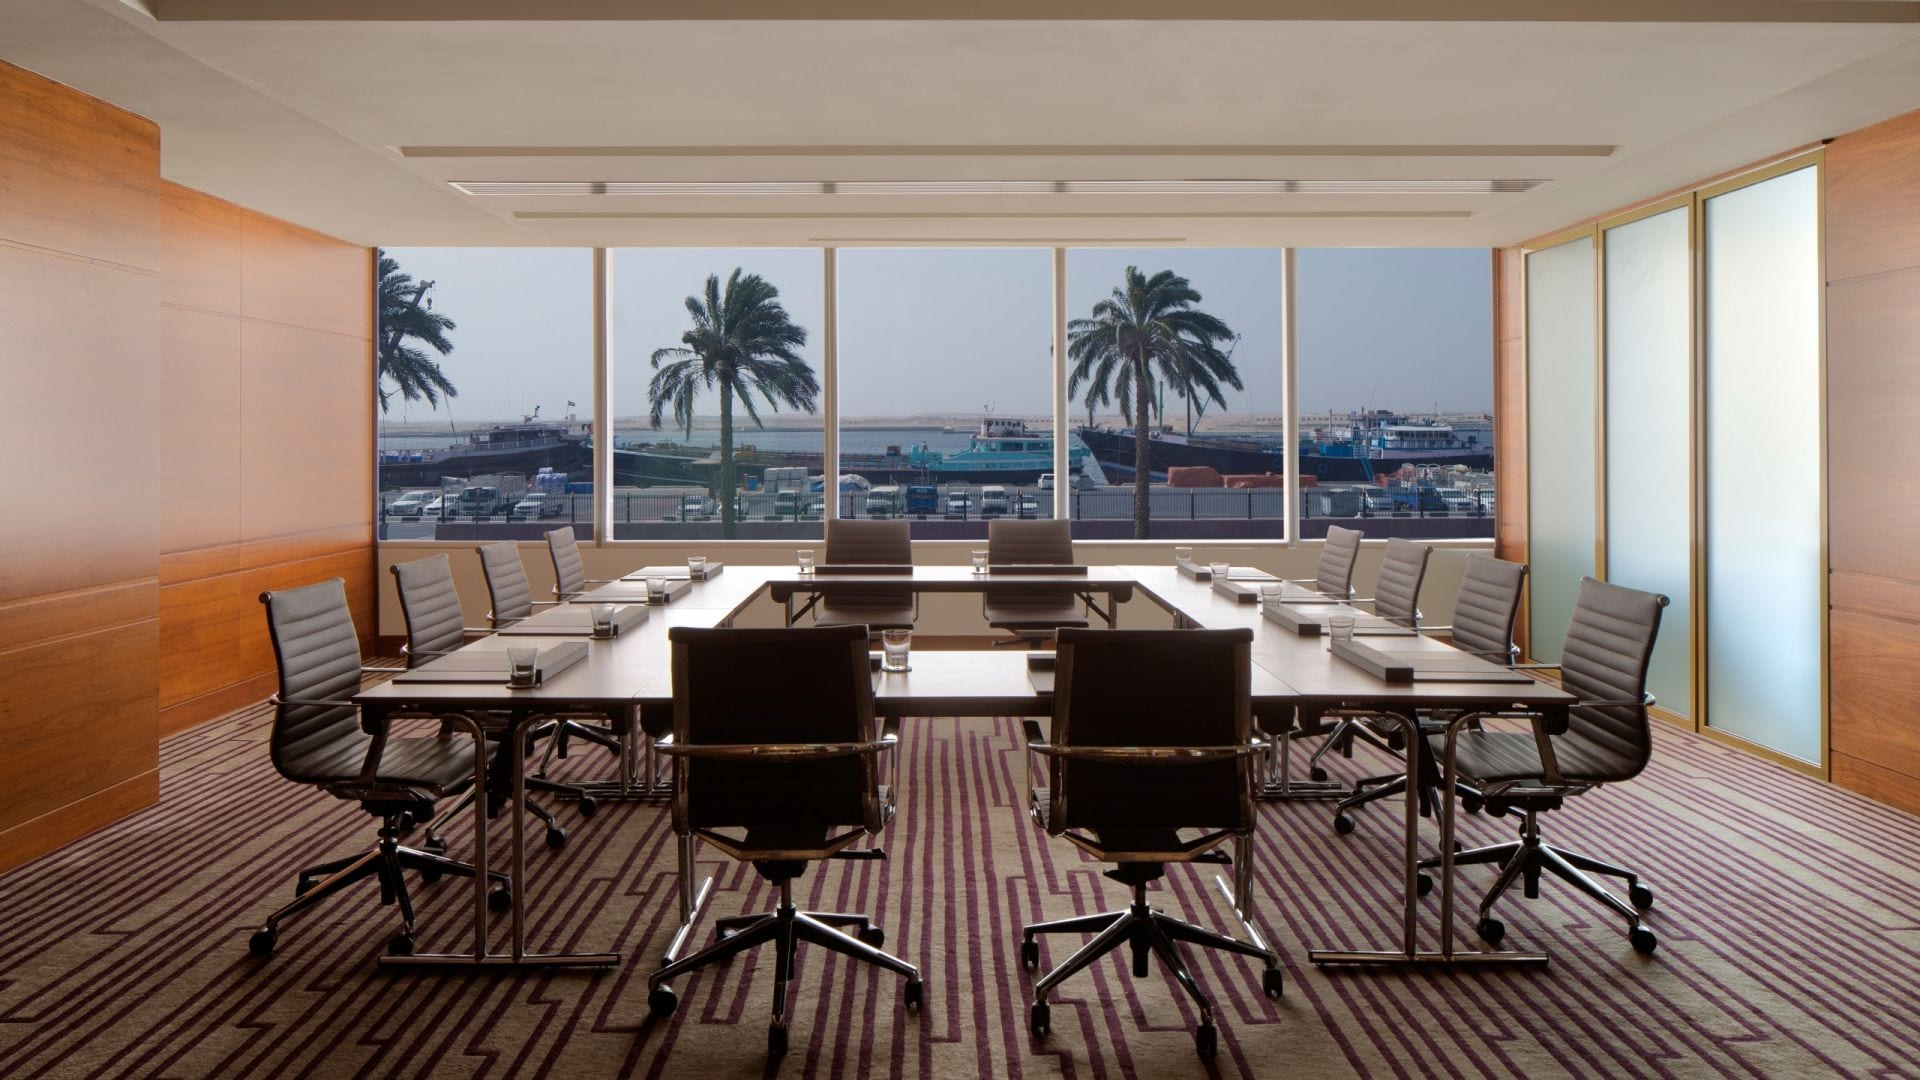 Chairs at large table in meeting room